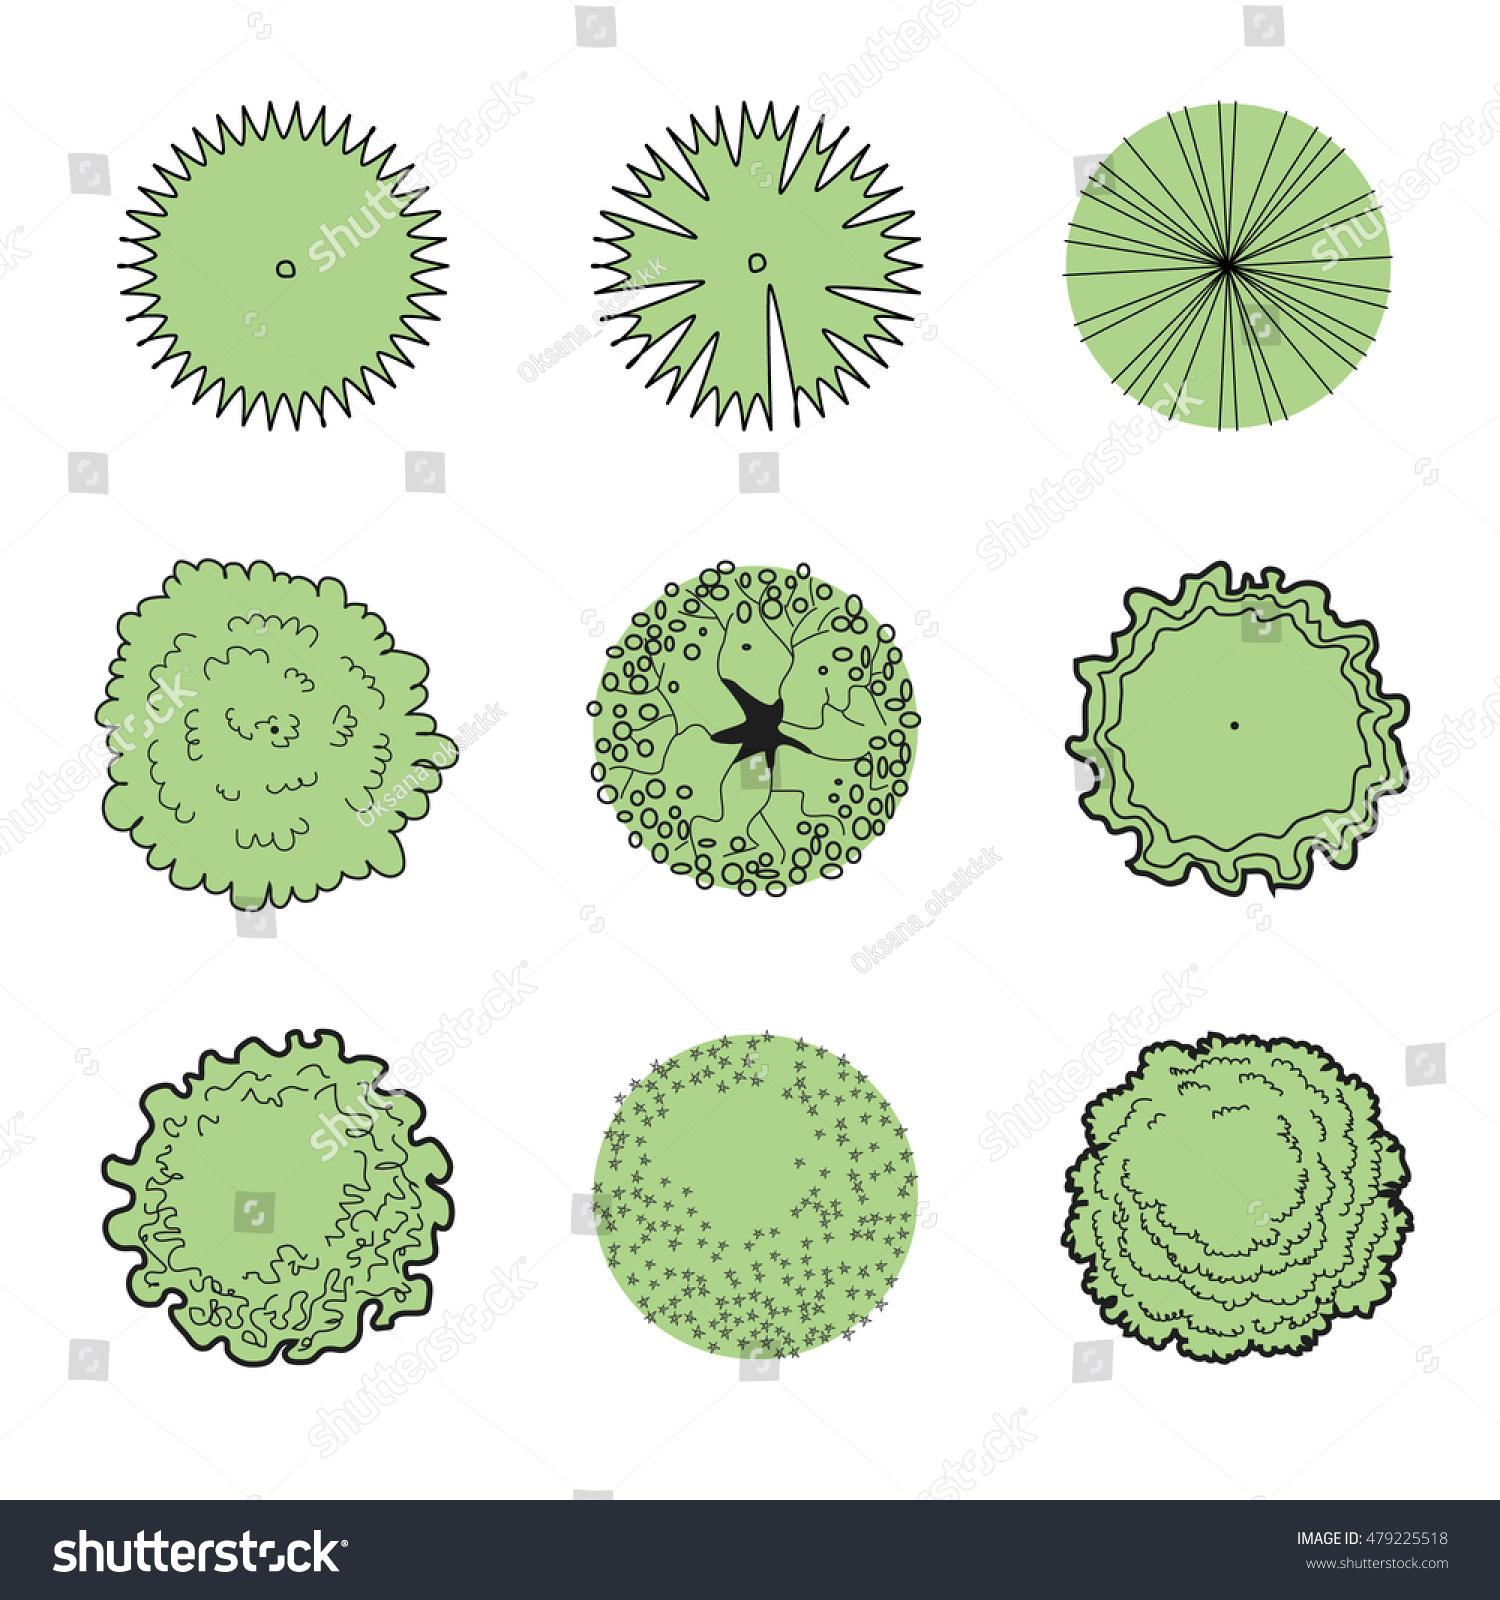 Trees Set Top View Plan Architectural Stock Vector (2018) 479225518 ... for tree plan view vector  587fsj